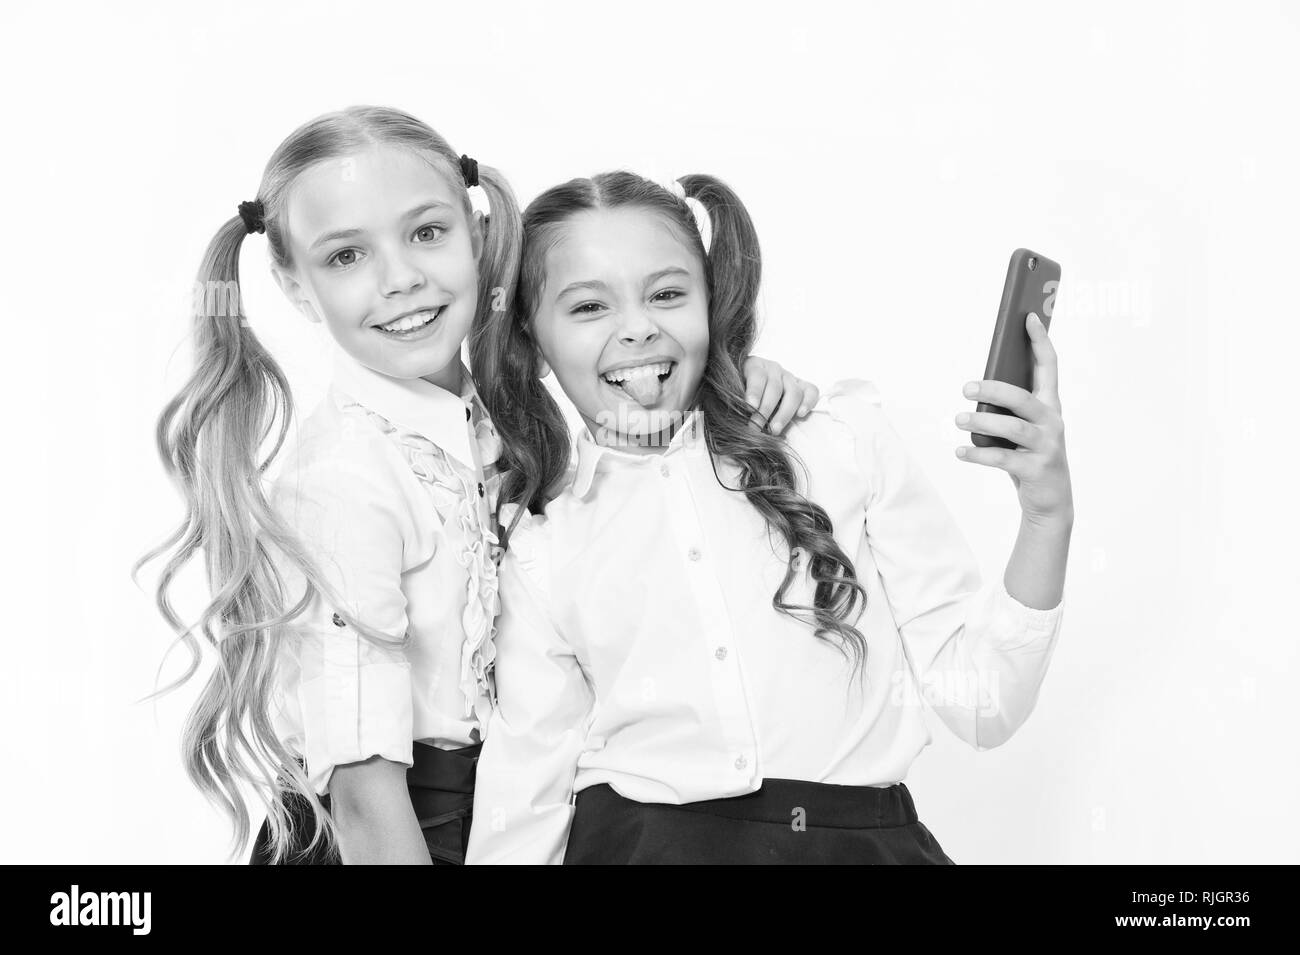 Happy girls smile with 4g mobile phones. Using 4g of wireless mobile telecommunications technology. - Stock Image